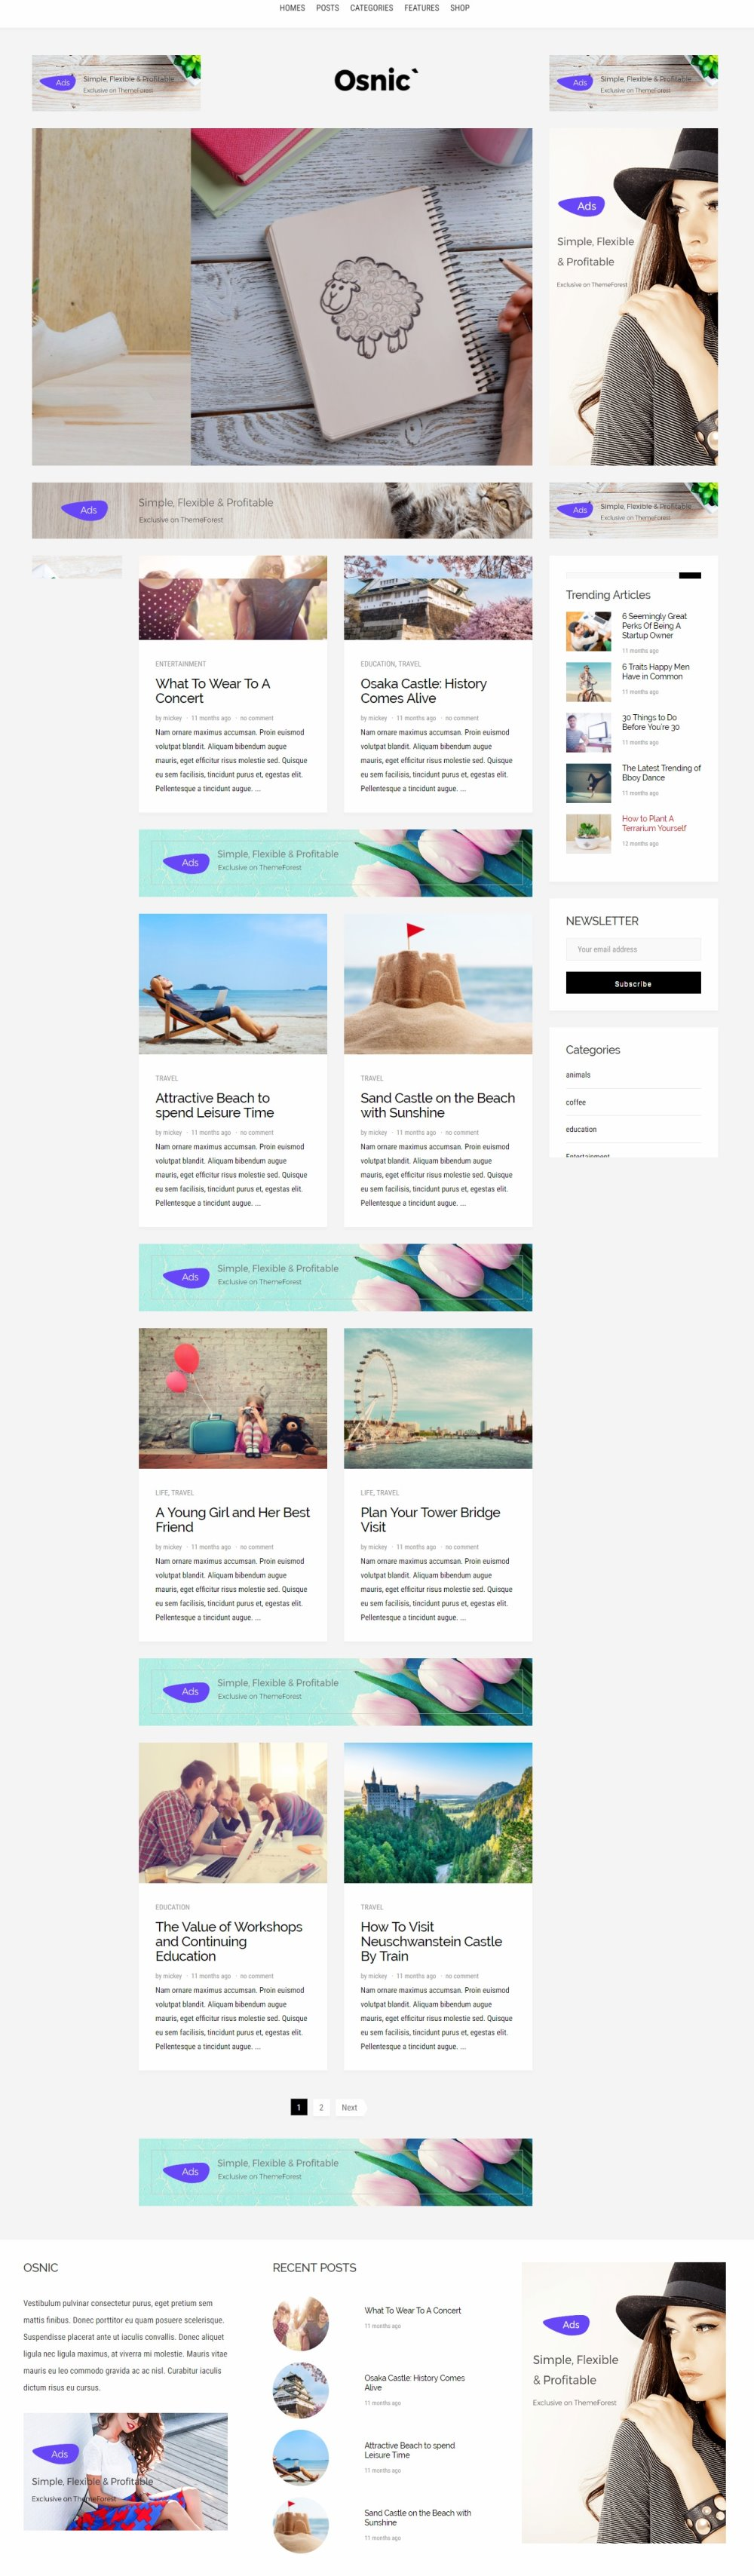 Osnic - AD Optimized BlogMagazine Theme for Adsense & Affiliate